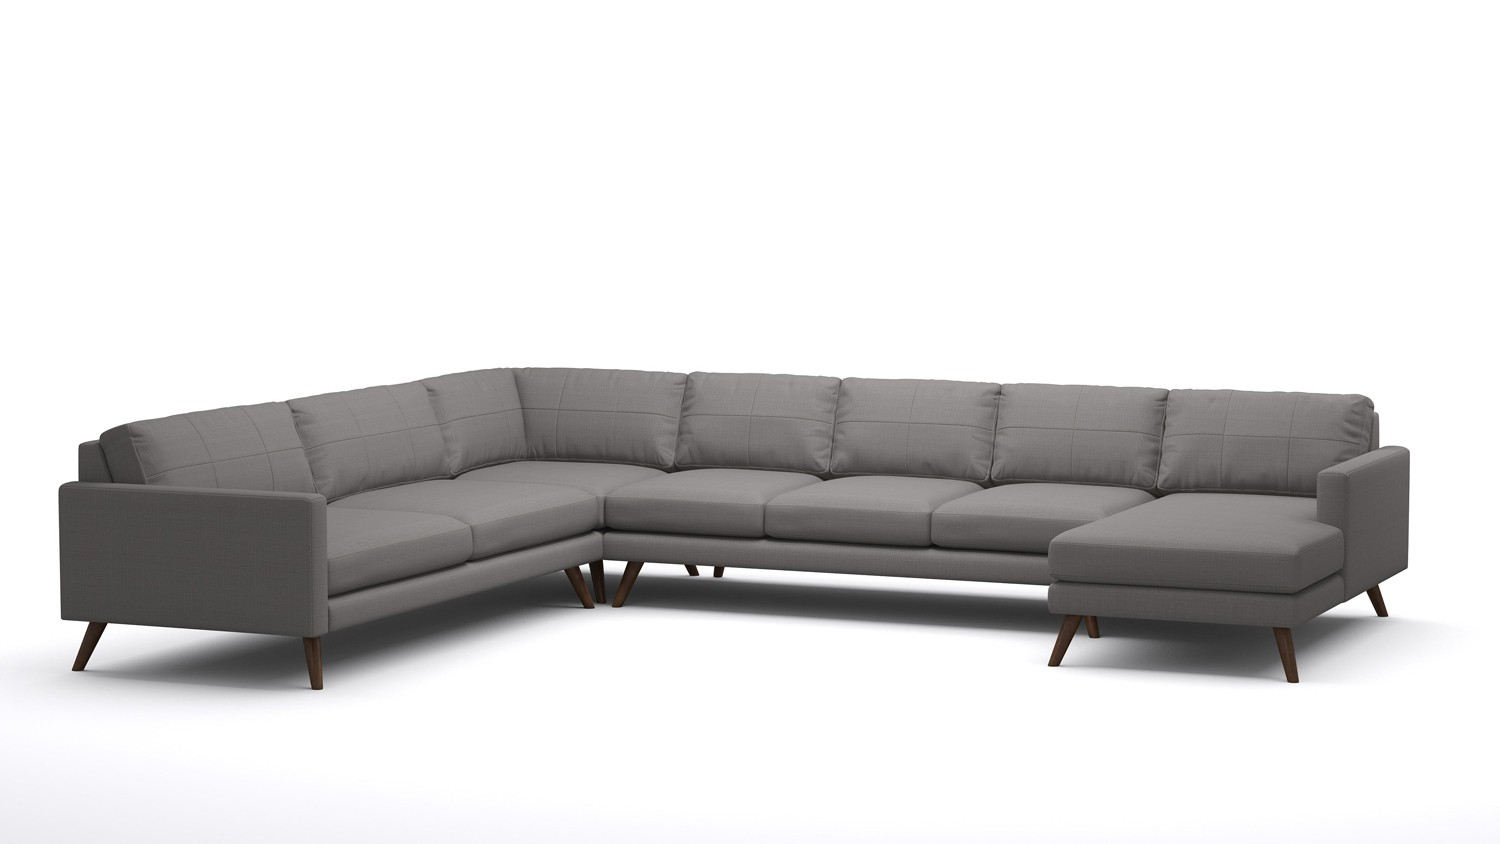 Dane (GBIE) Corner Sectional Sofa